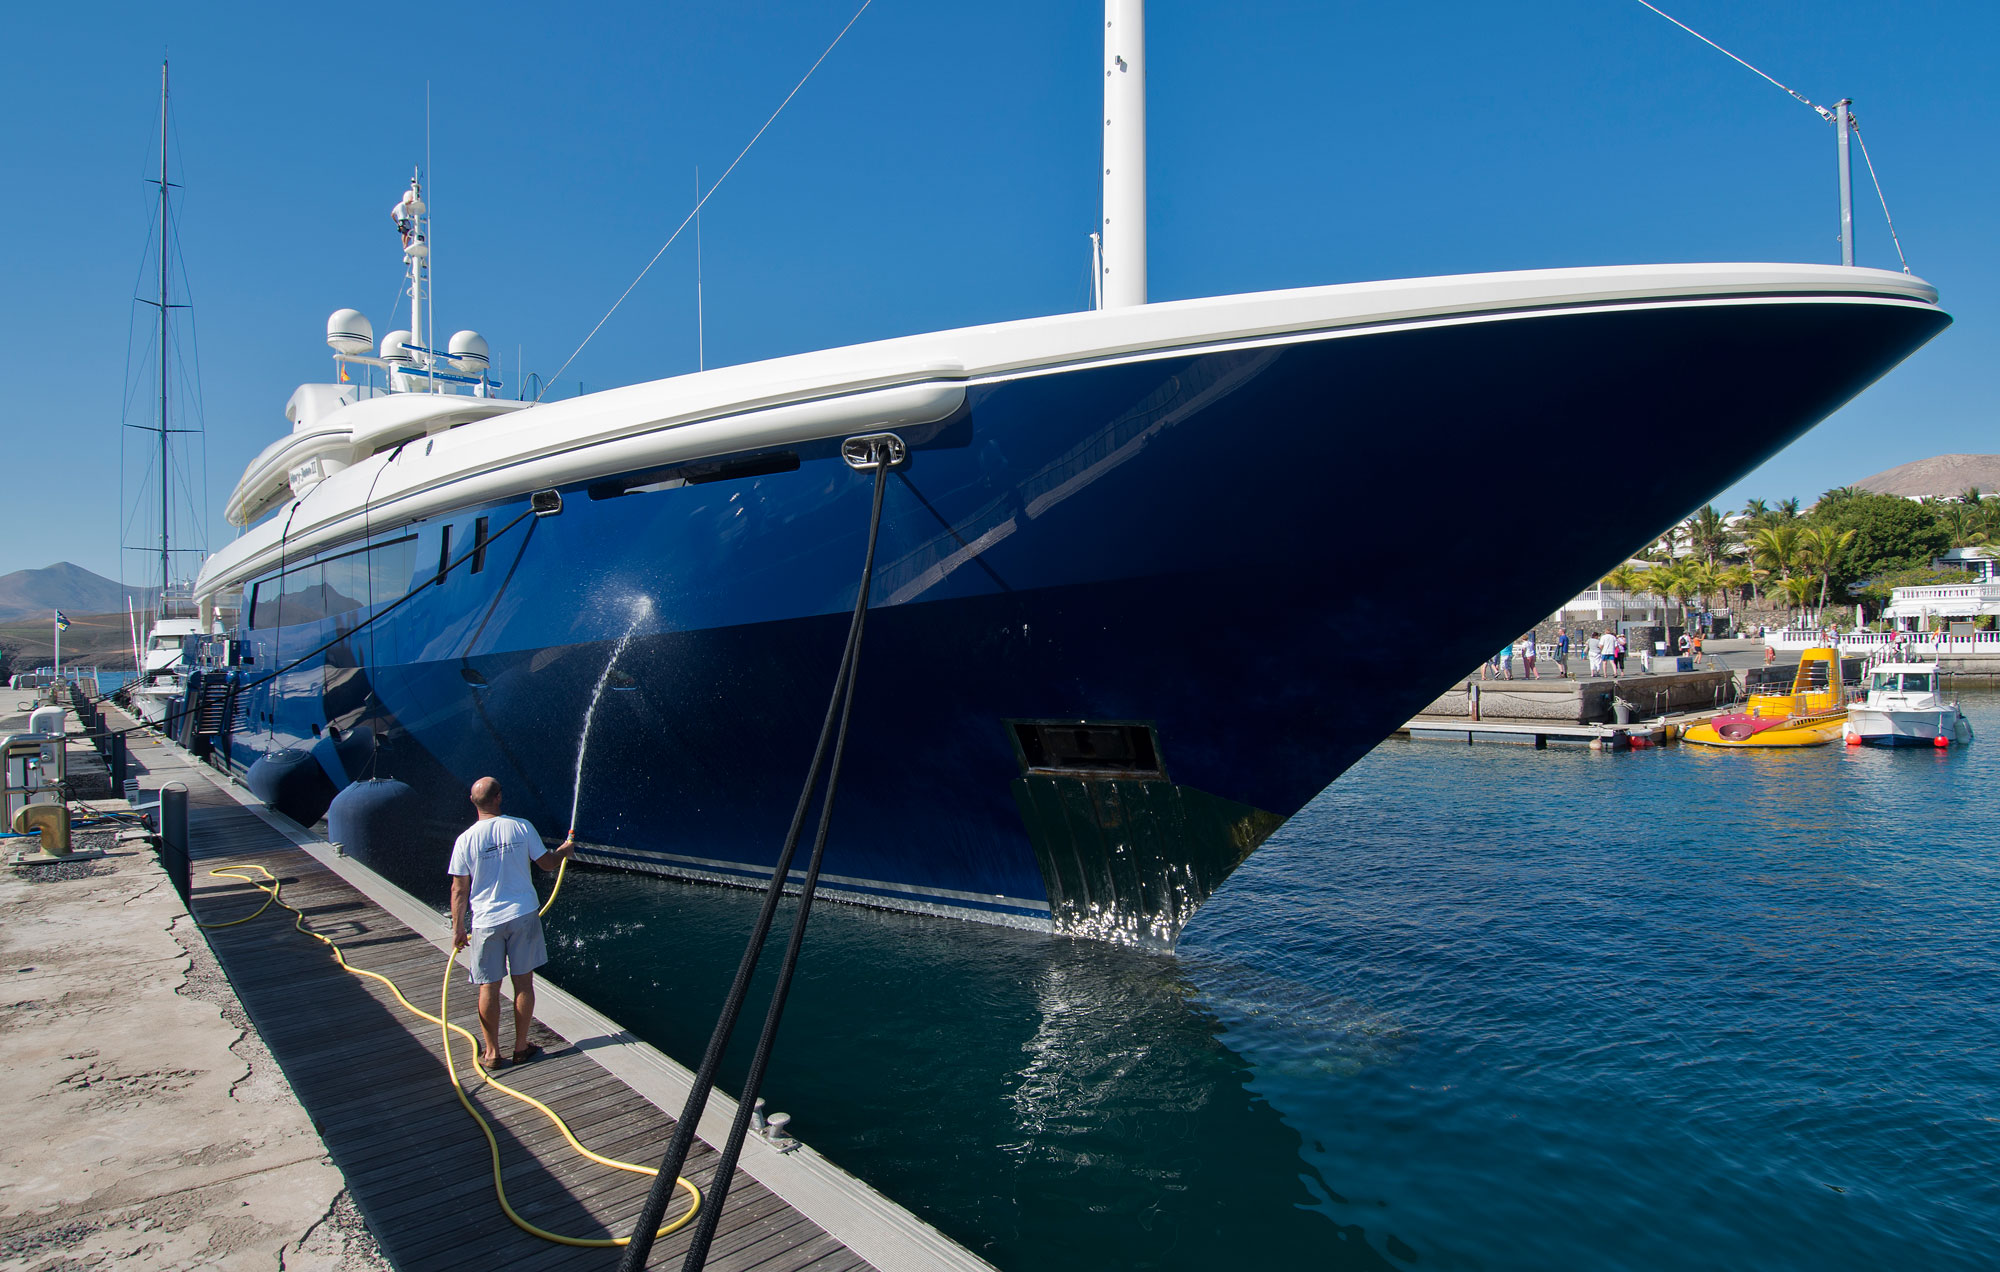 Man spraying a blue and white superyacht with water to clean the sides off.